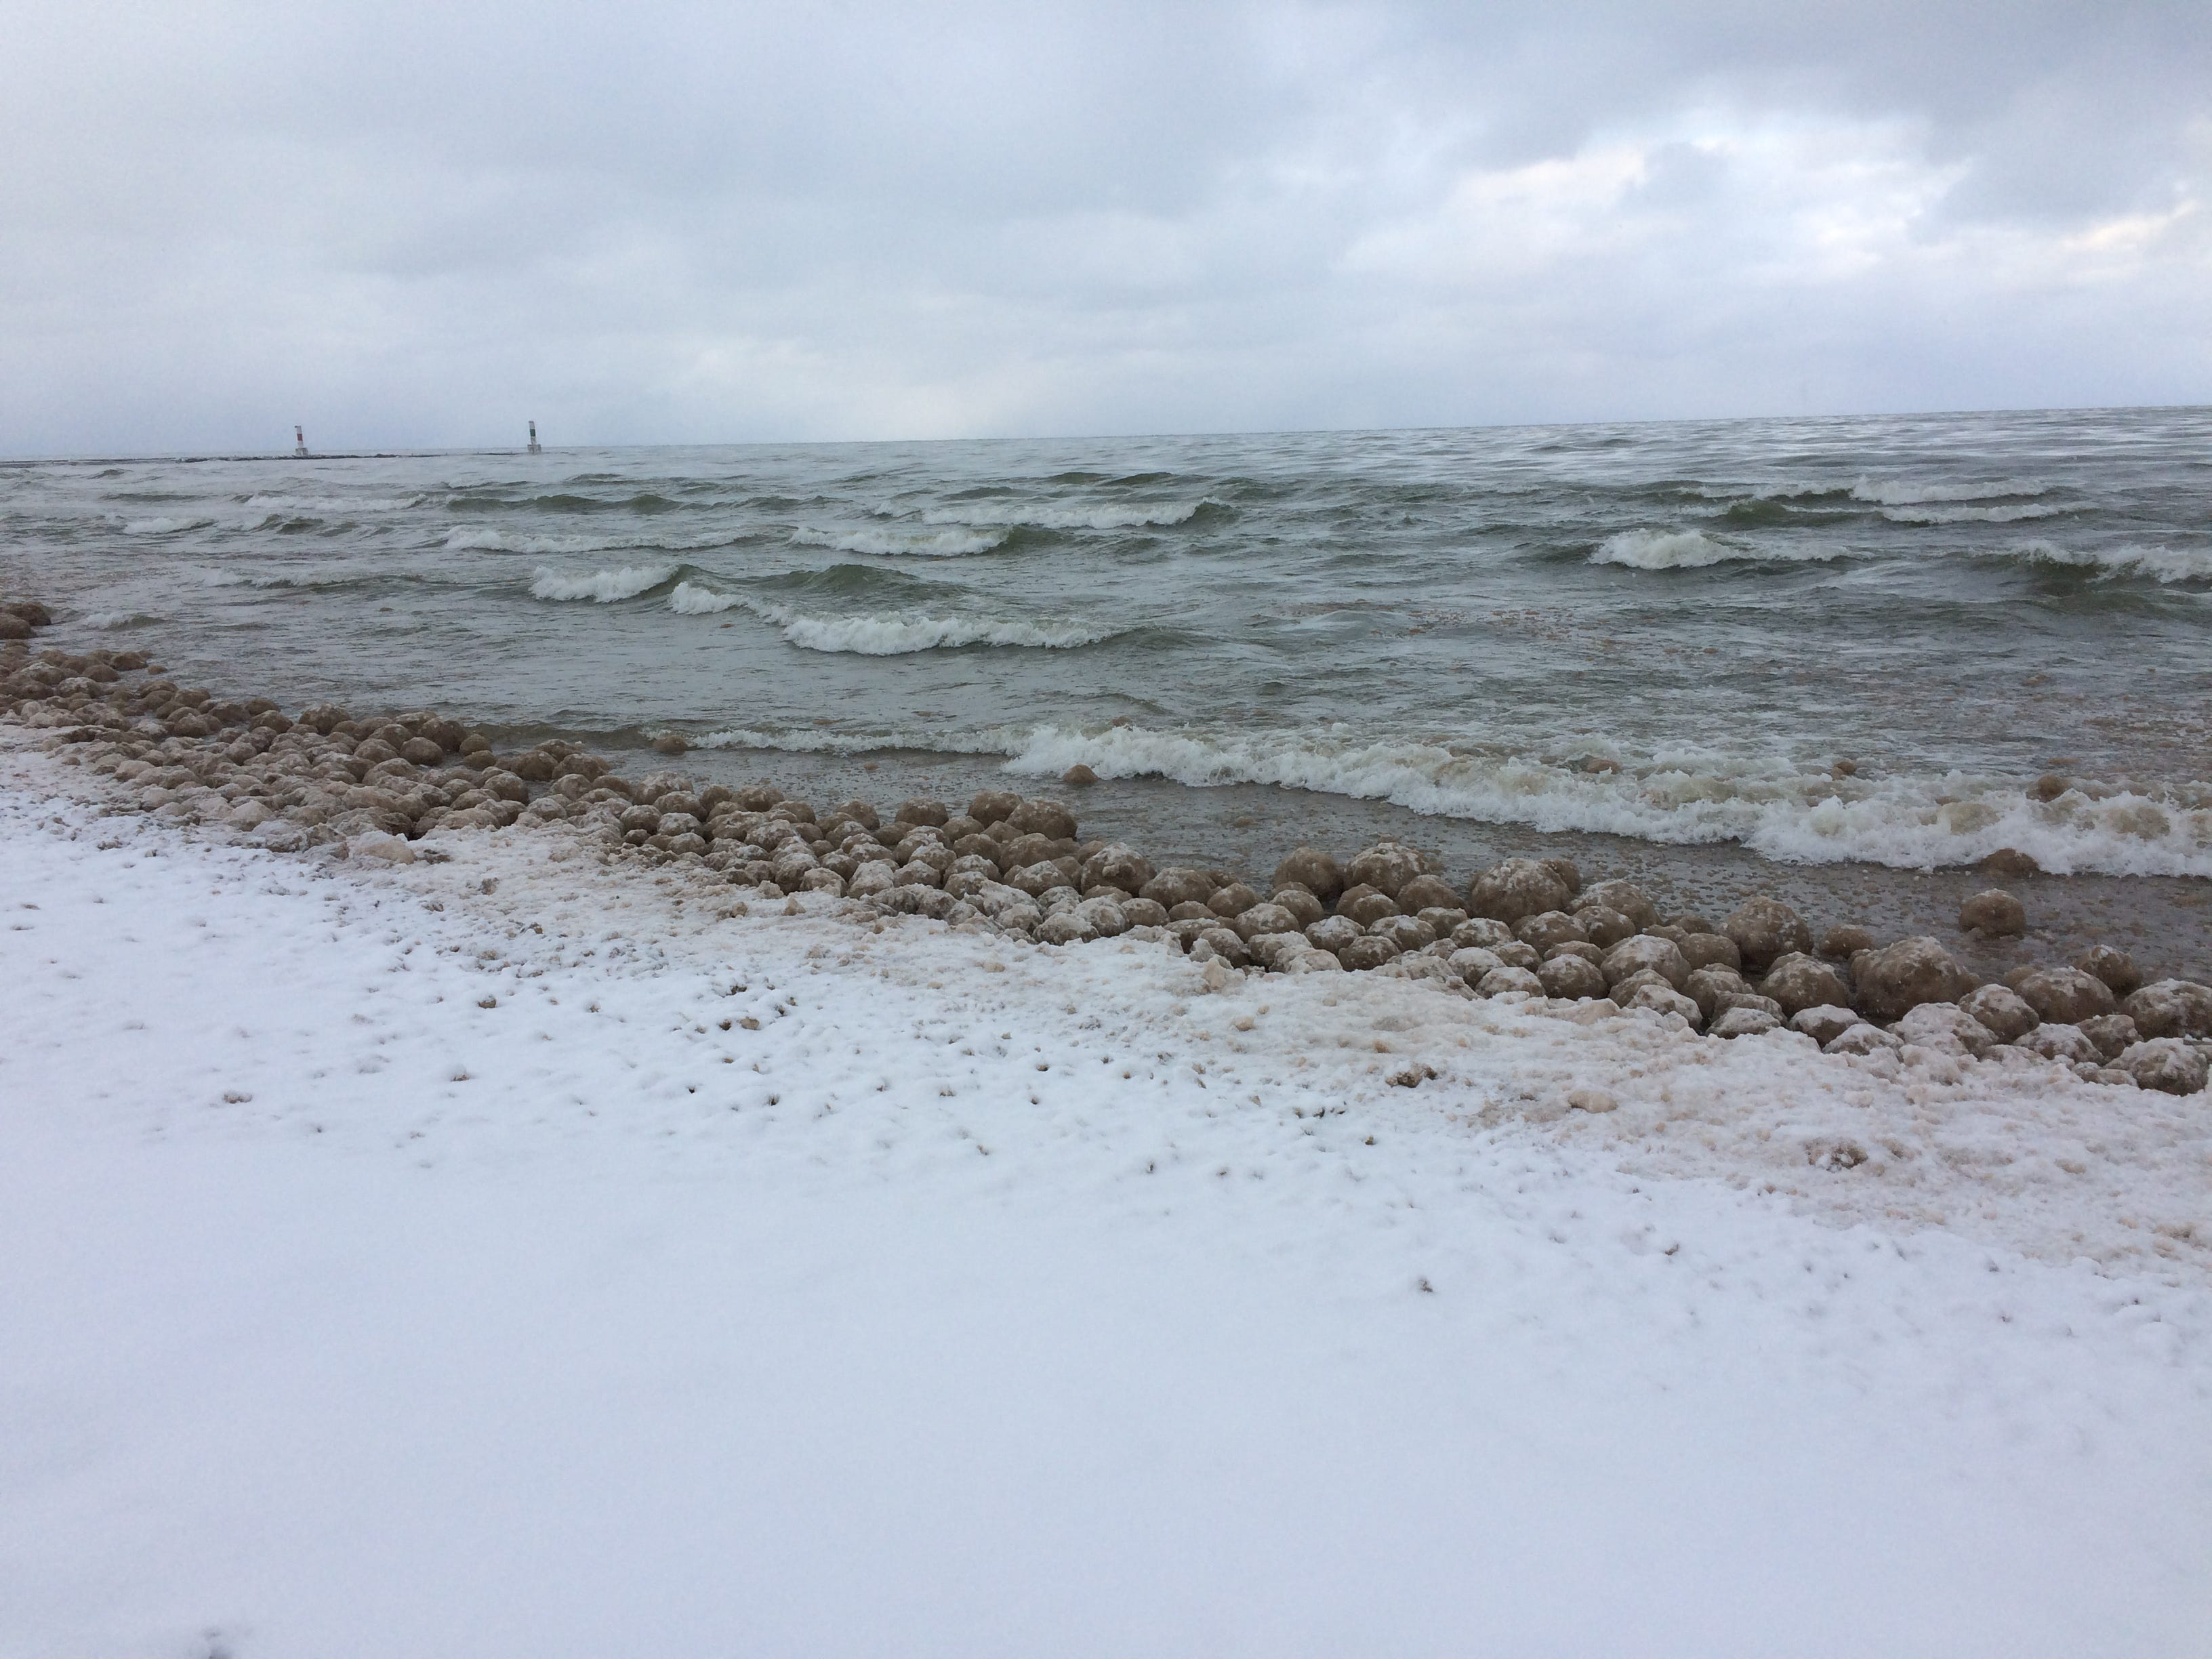 Thousands of rare ice balls appear on Lake Michigan beach, some as big as yoga balls